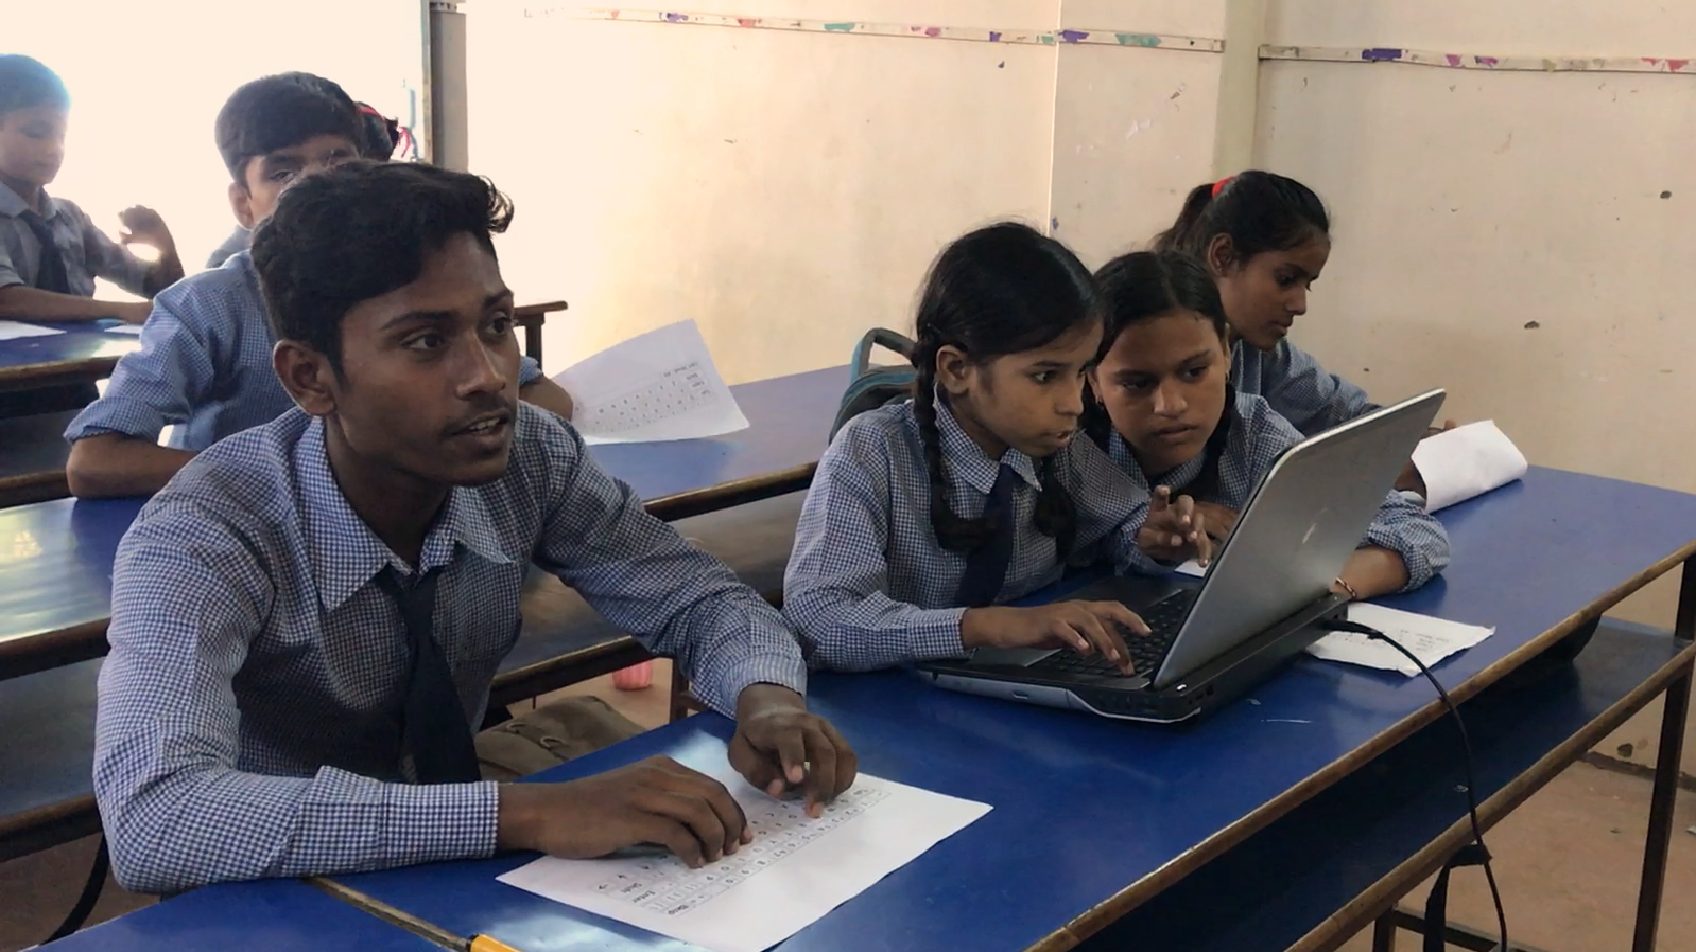 Our Class 5 students in Computer Skills class - students practice on paper keyboards awaiting their turn